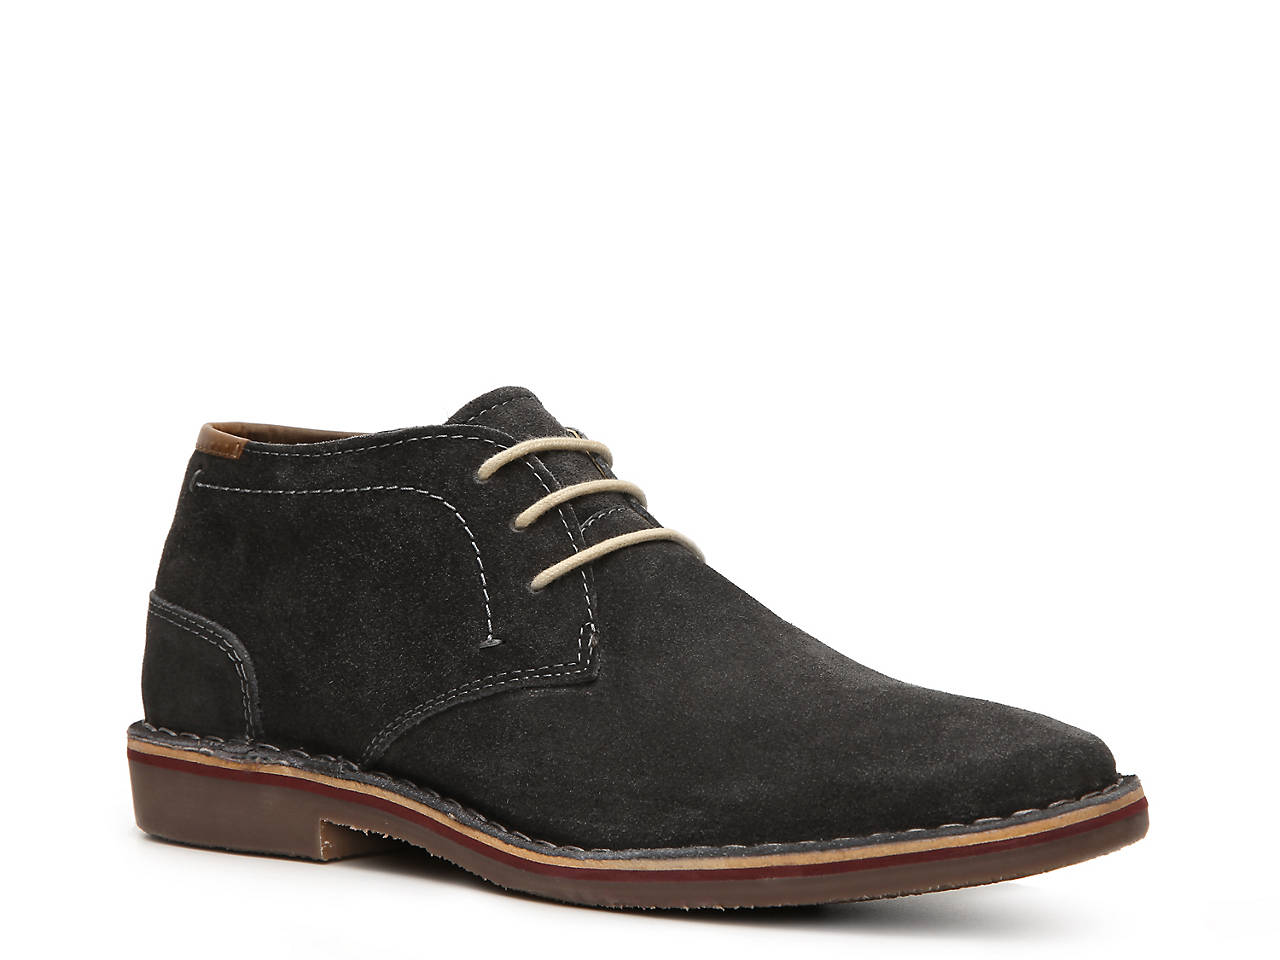 Kenneth Cole Reaction Desert Wind Chukka Boot Men's Shoes | DSW